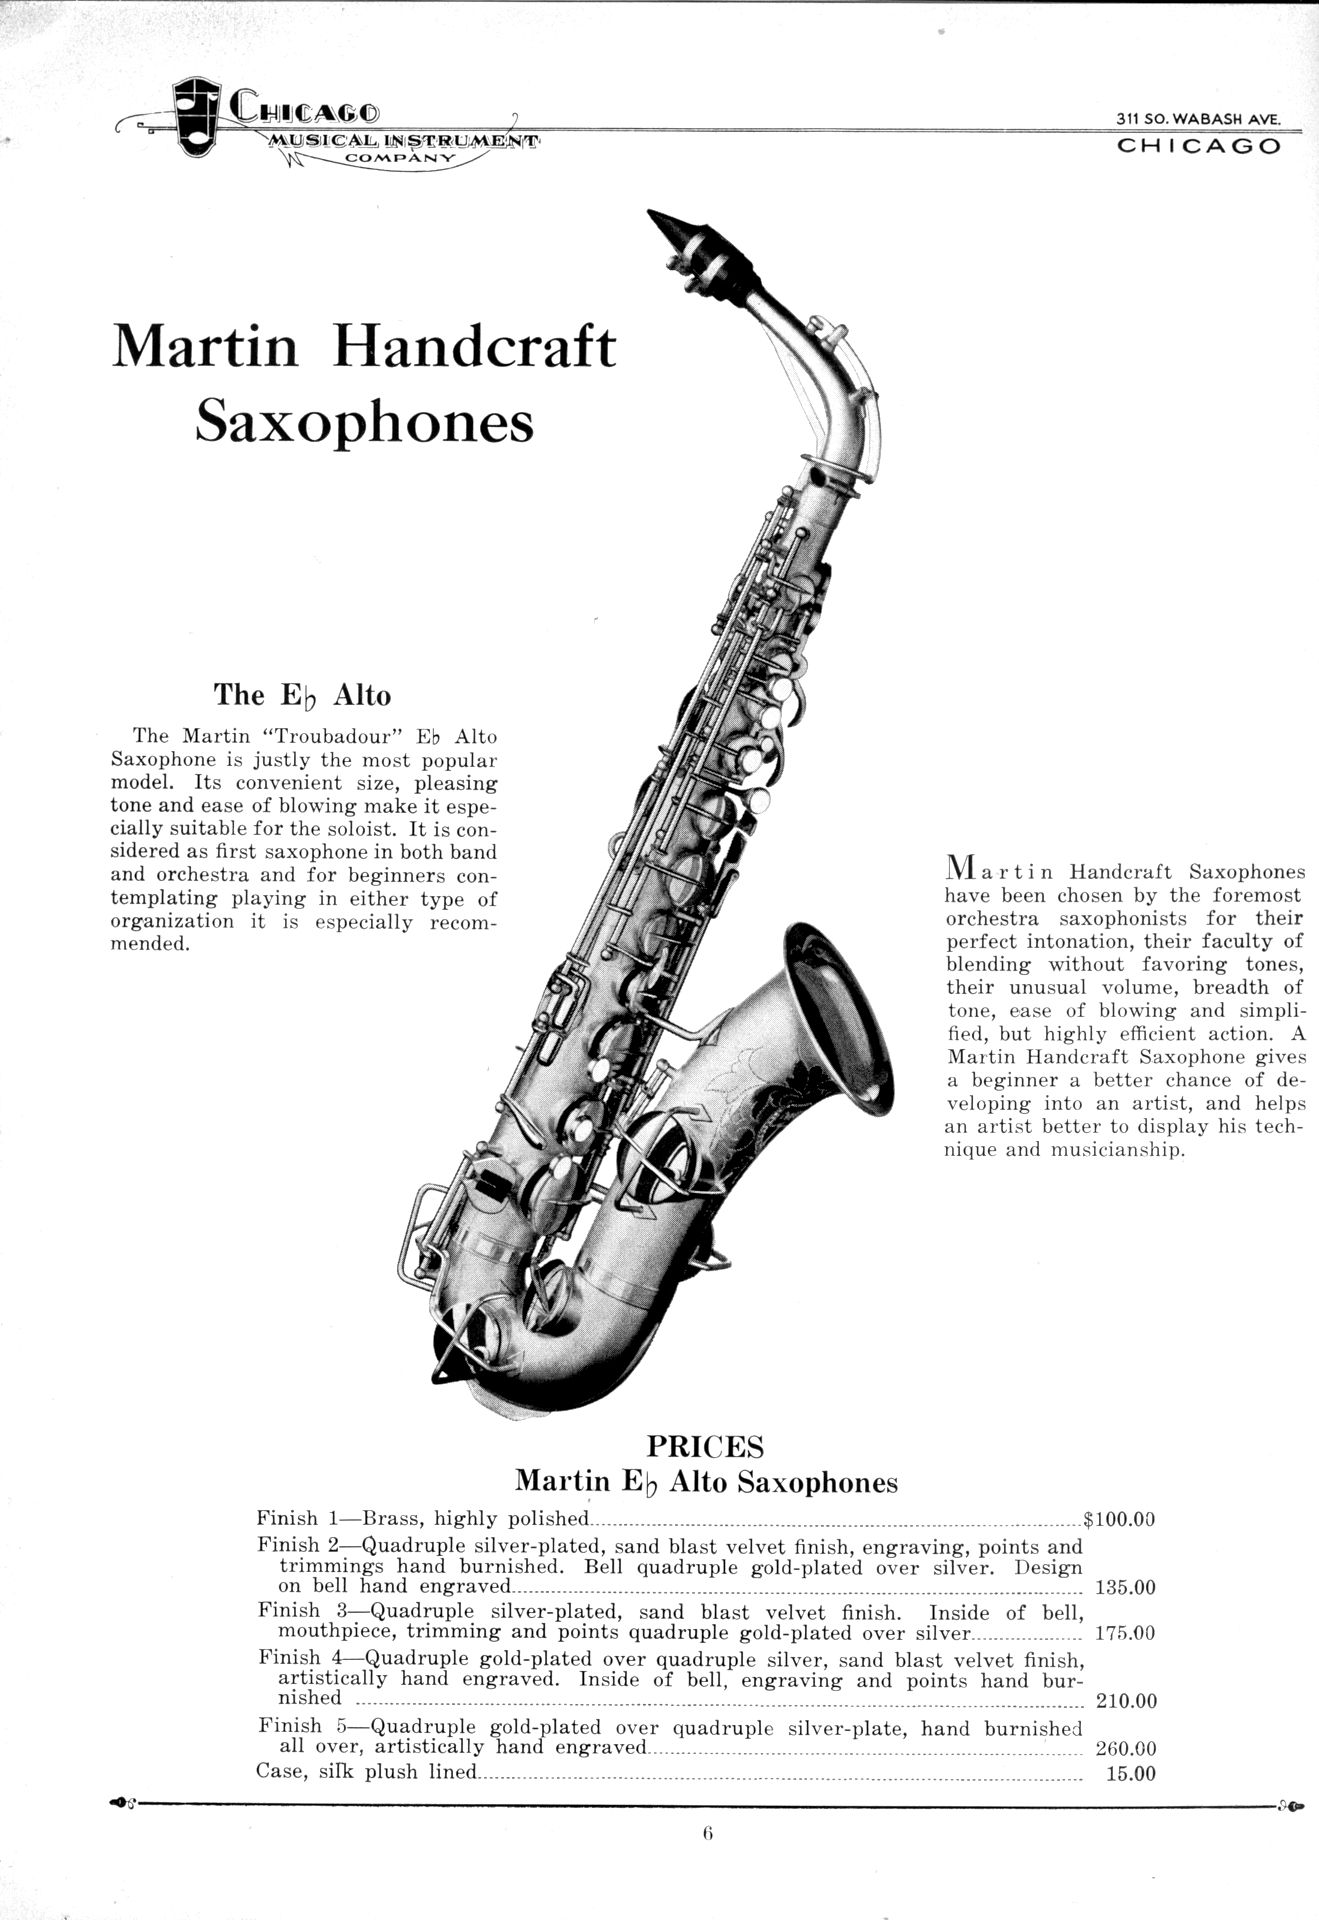 The Chicago Musical Instrument Co  | The Bassic Sax Blog